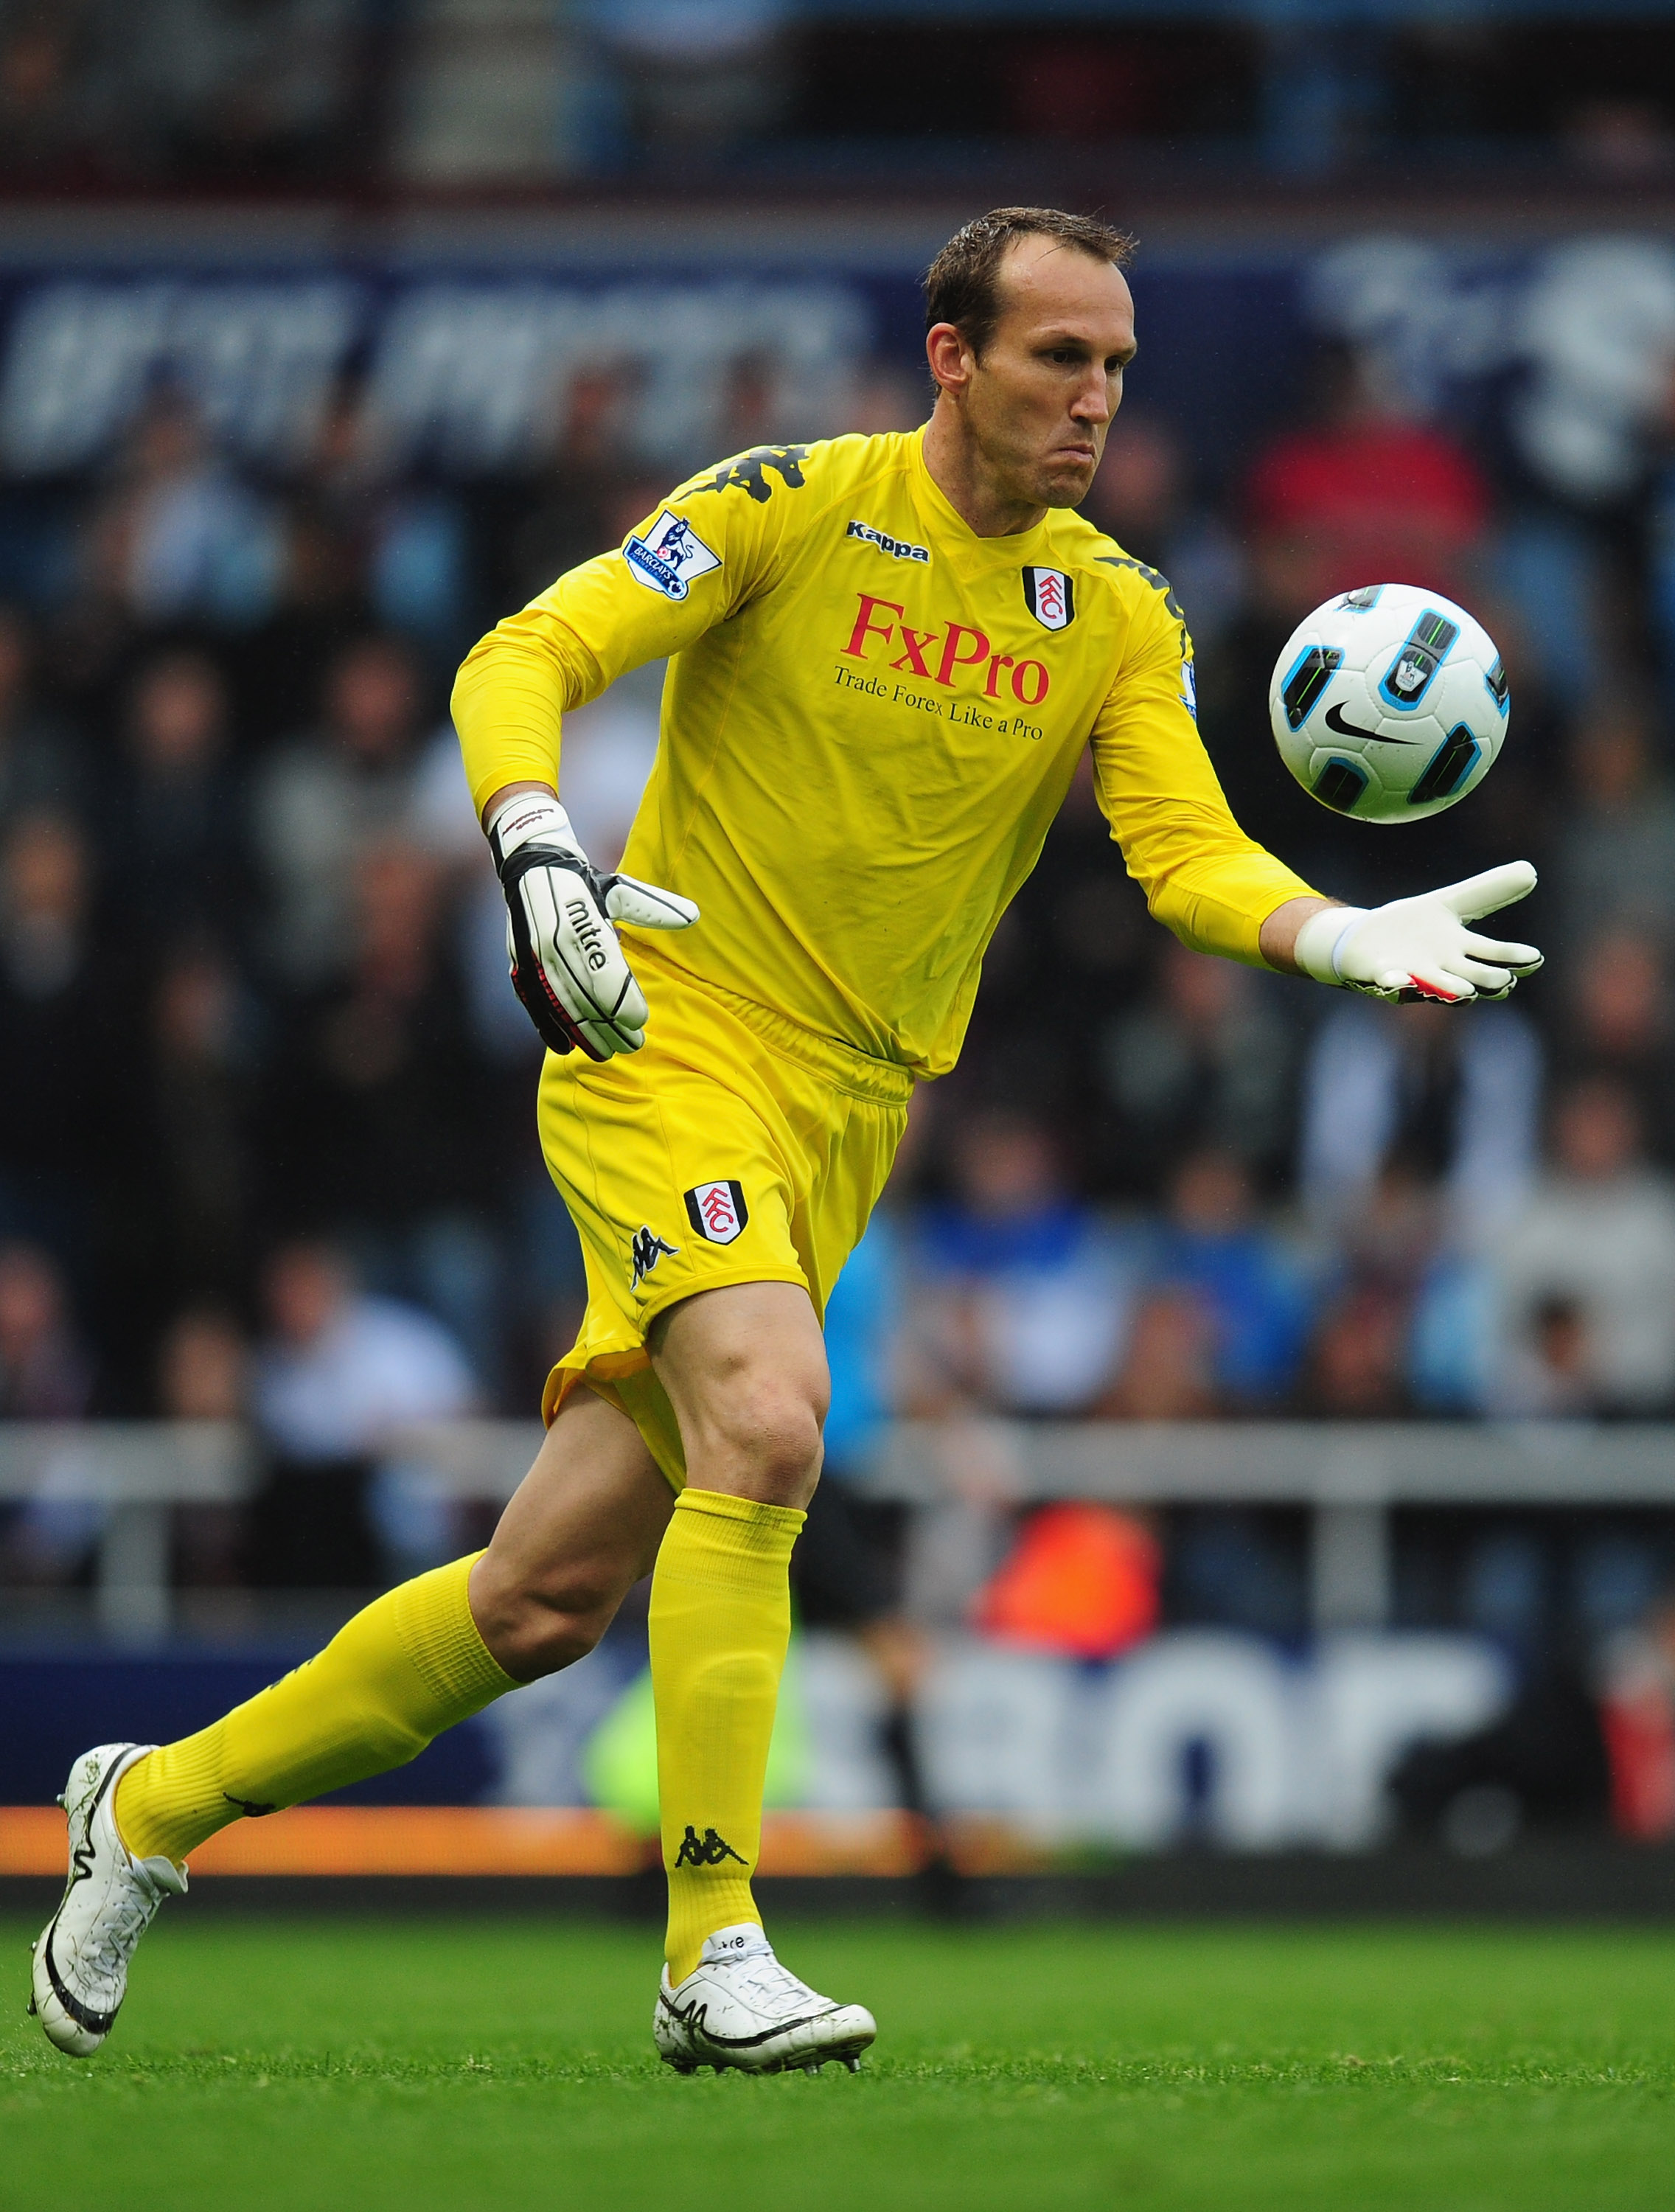 LONDON, ENGLAND - OCTOBER 02:  Mark Schwarzer of Fulham in action during the Barclays Premier League match between West Ham United and Fulham at Boleyn Ground on October 2, 2010 in London, England.  (Photo by Mike Hewitt/Getty Images)